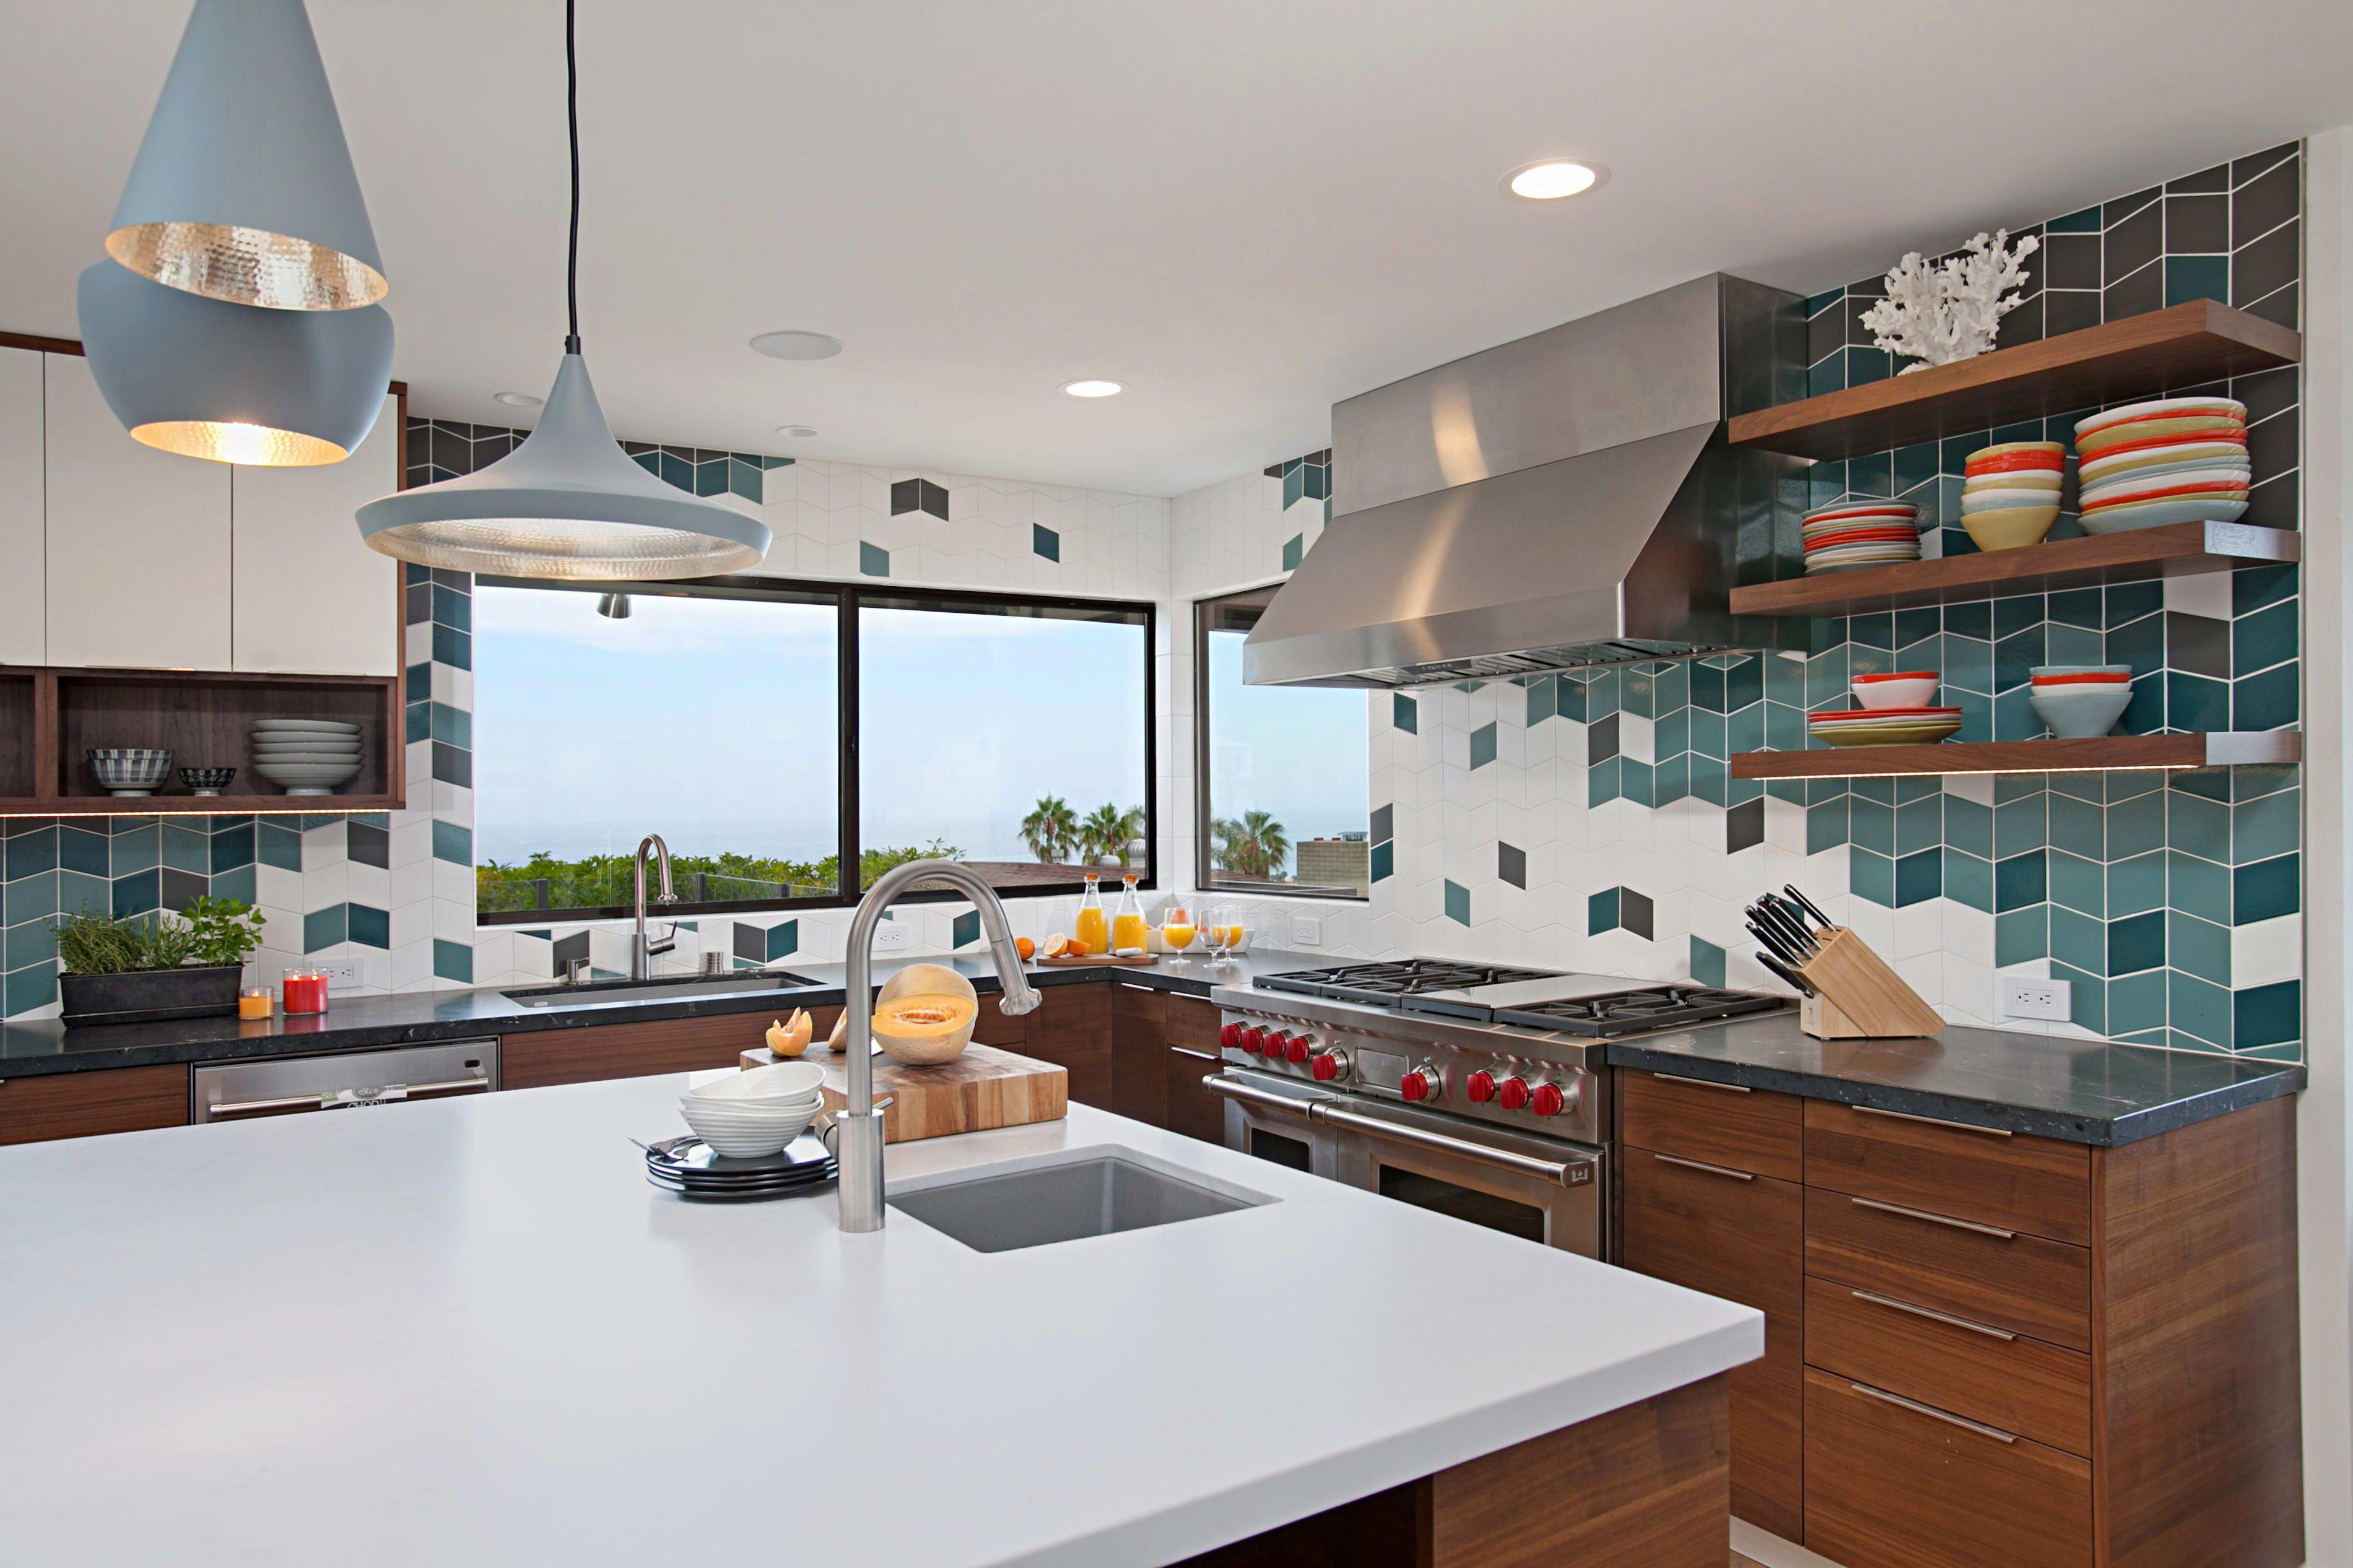 A Renovated 1950s House Is Full Of Colorful Tile Inspiration